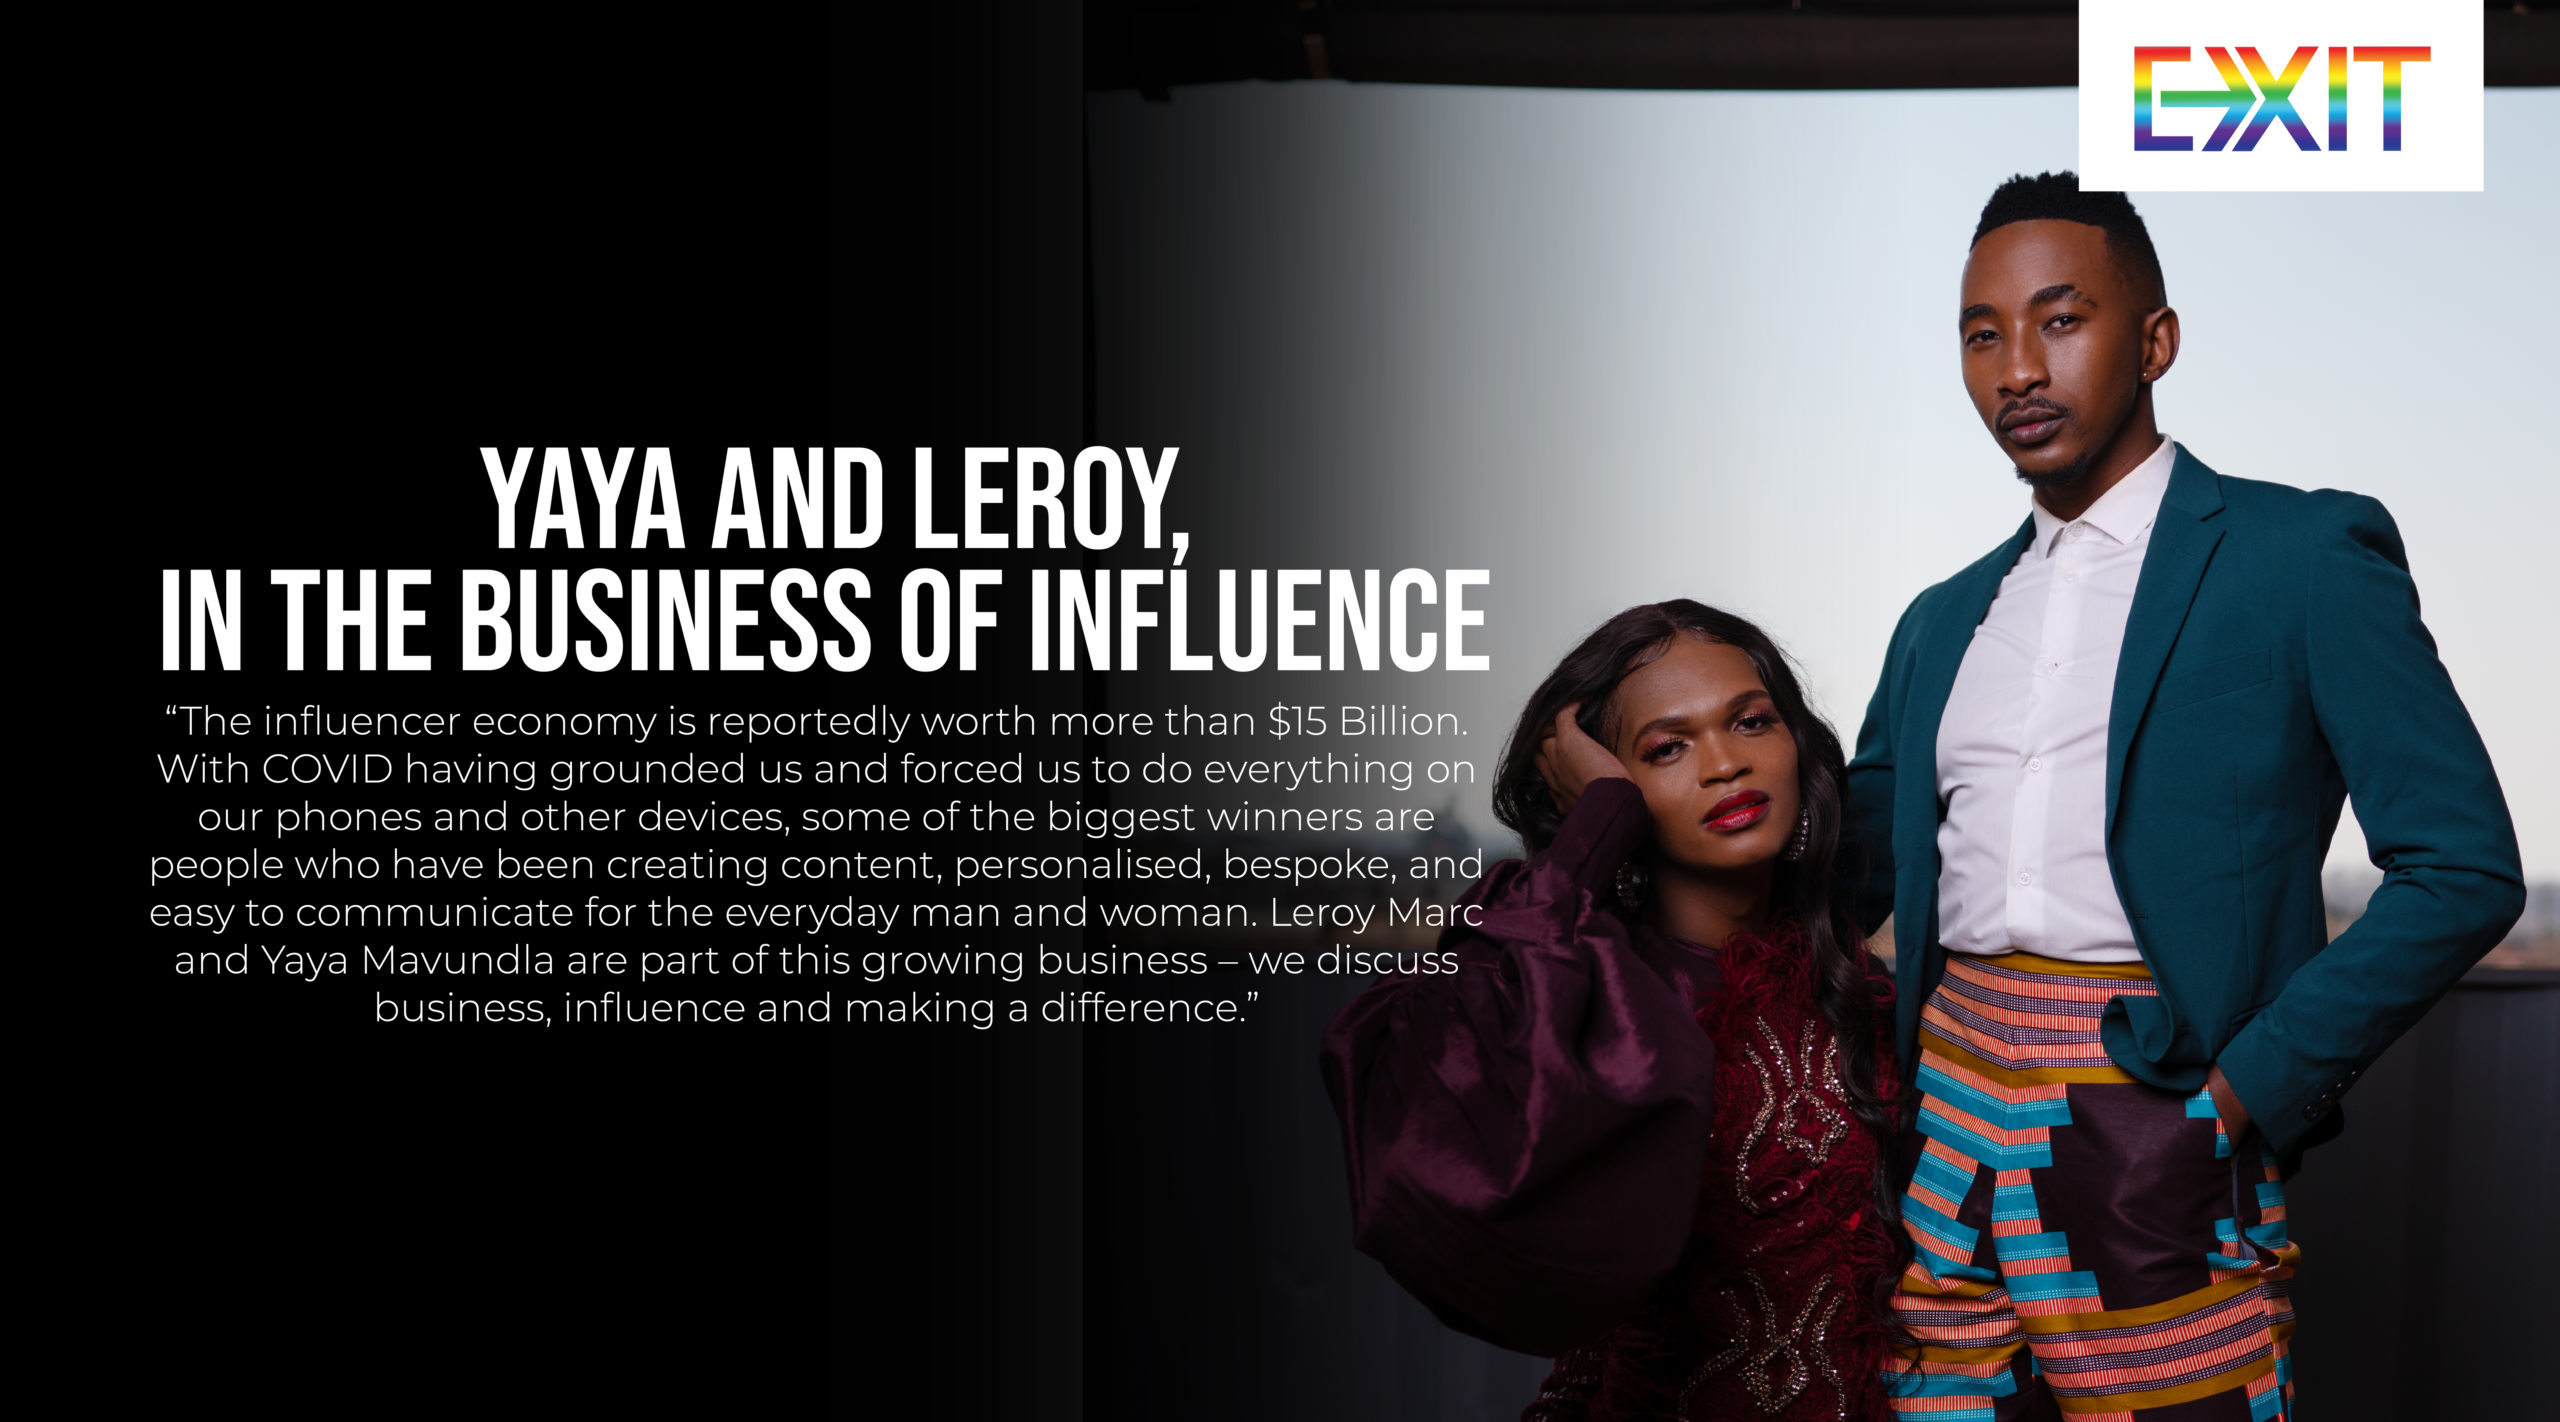 YAYA AND LEROY, IN THE BUSINESS OF INFLUENCE